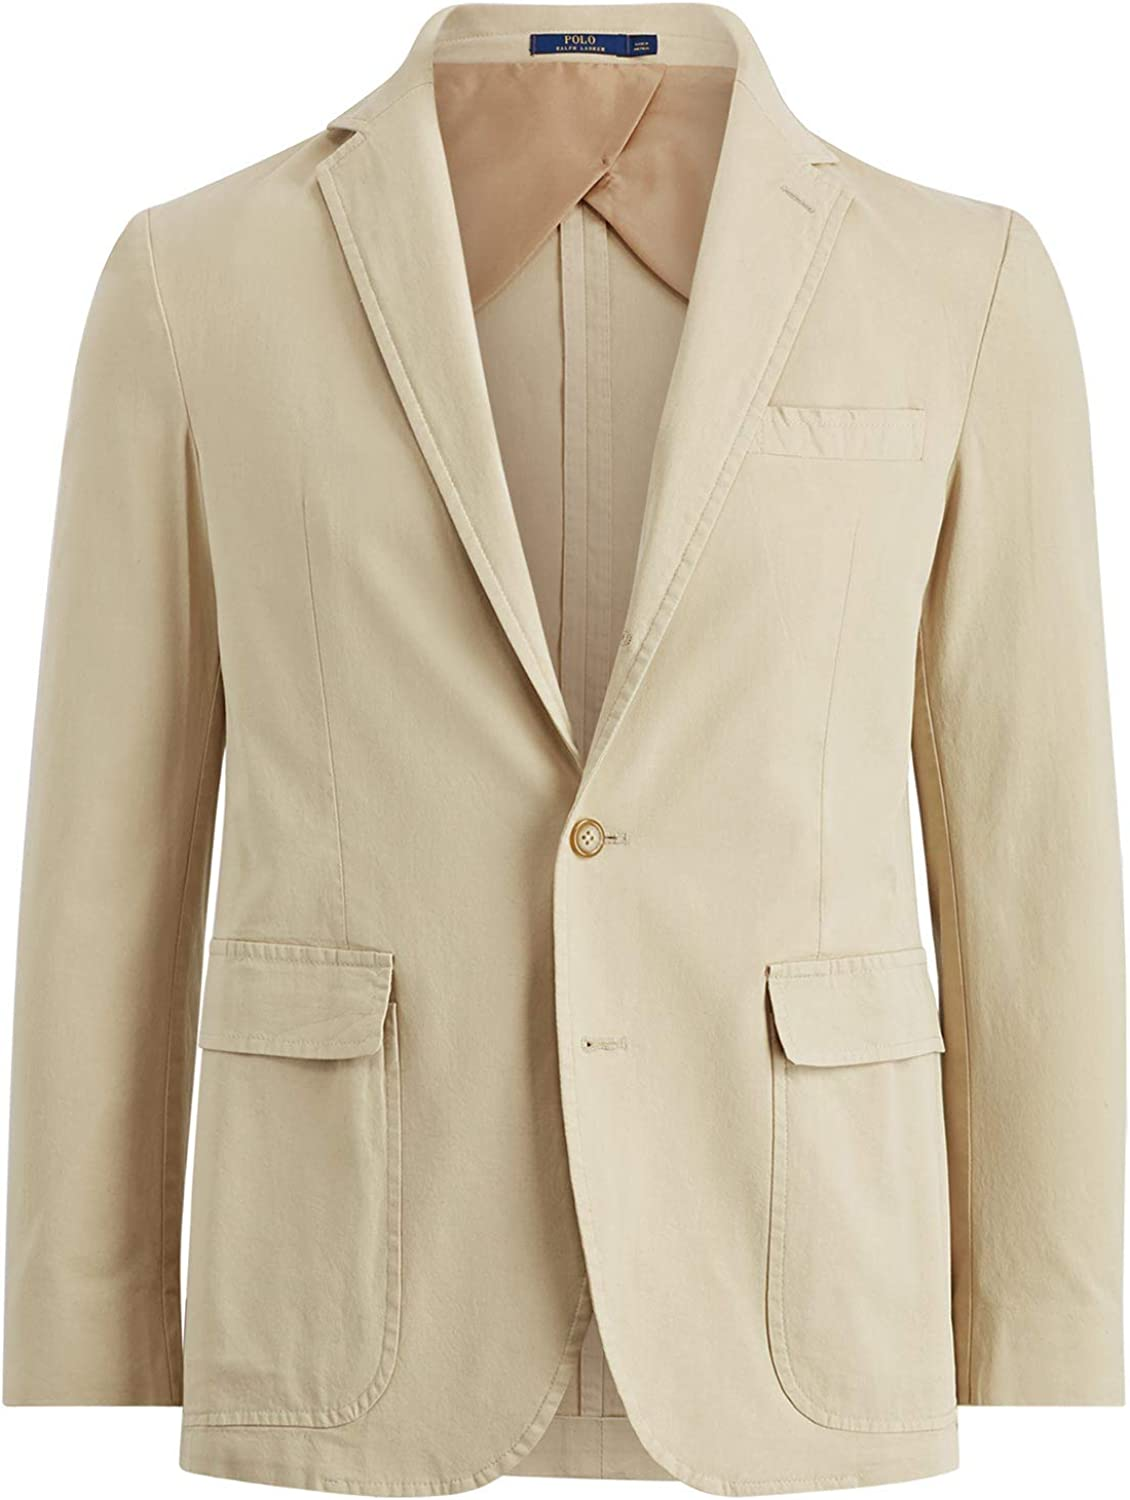 Ralph Lauren Mens Stretch Chino Three Button Blazer Jacket